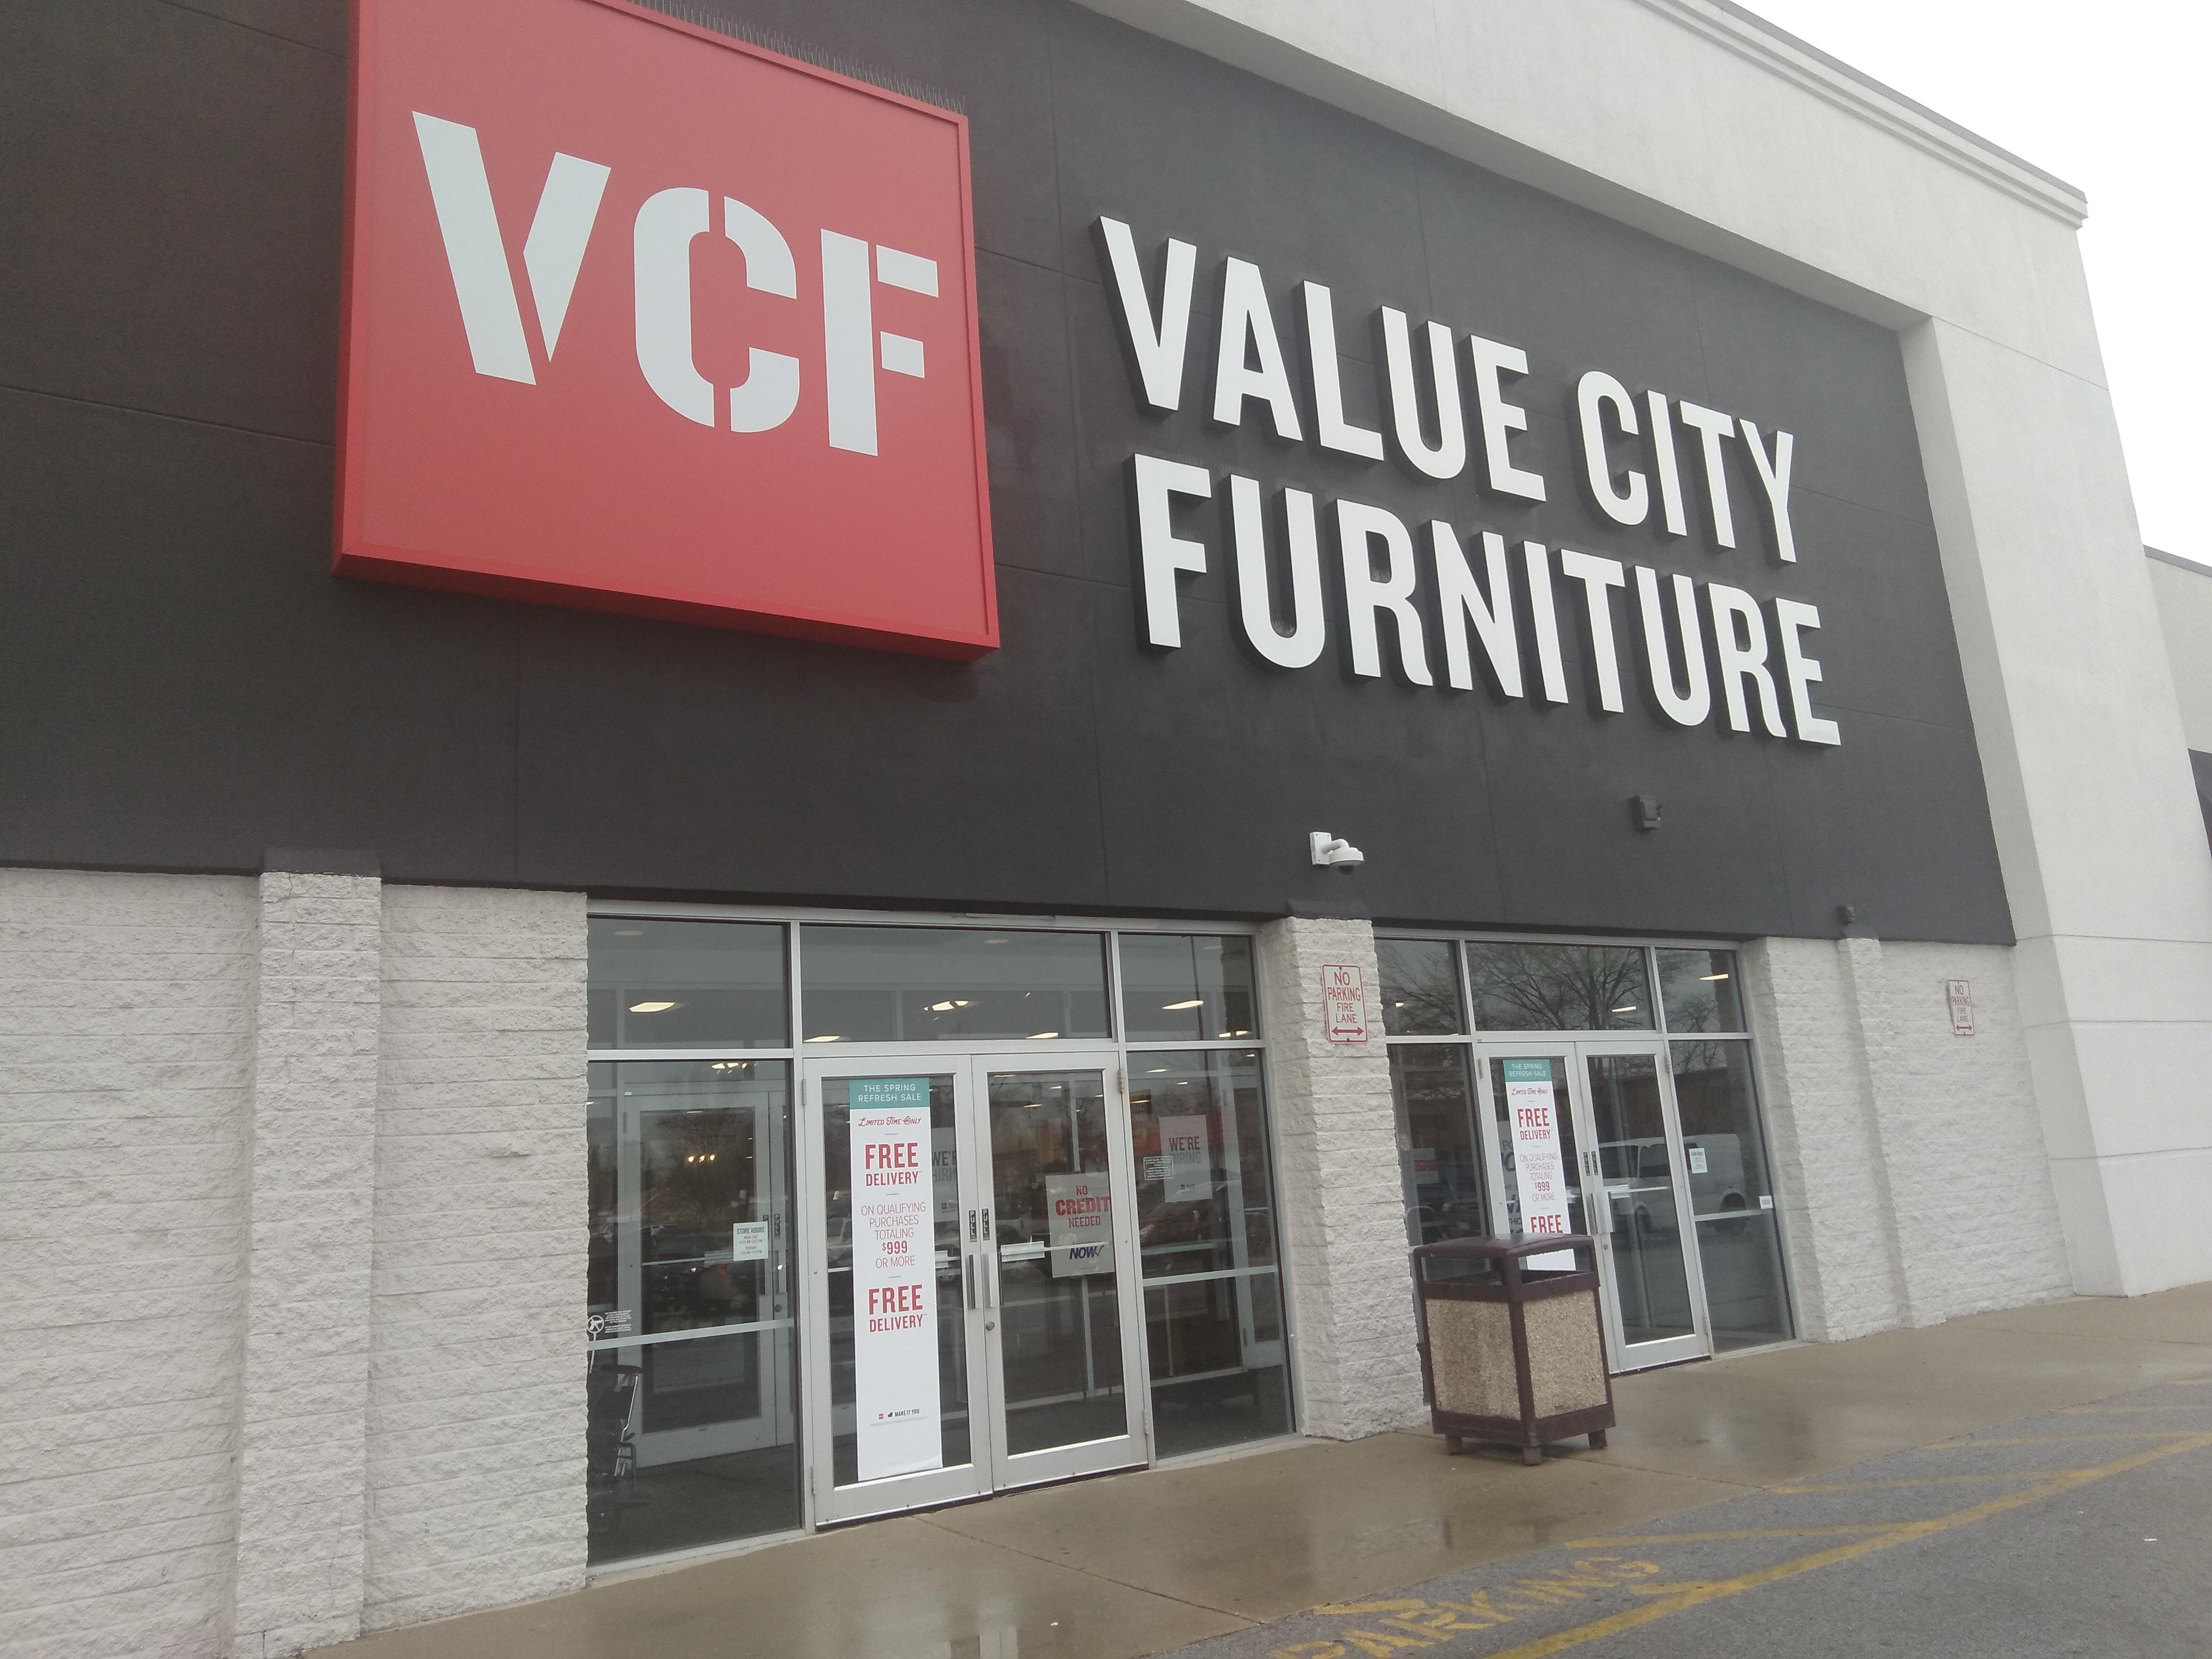 Value City Furniture At 8310 South Cicero Ave, Burbank, IL